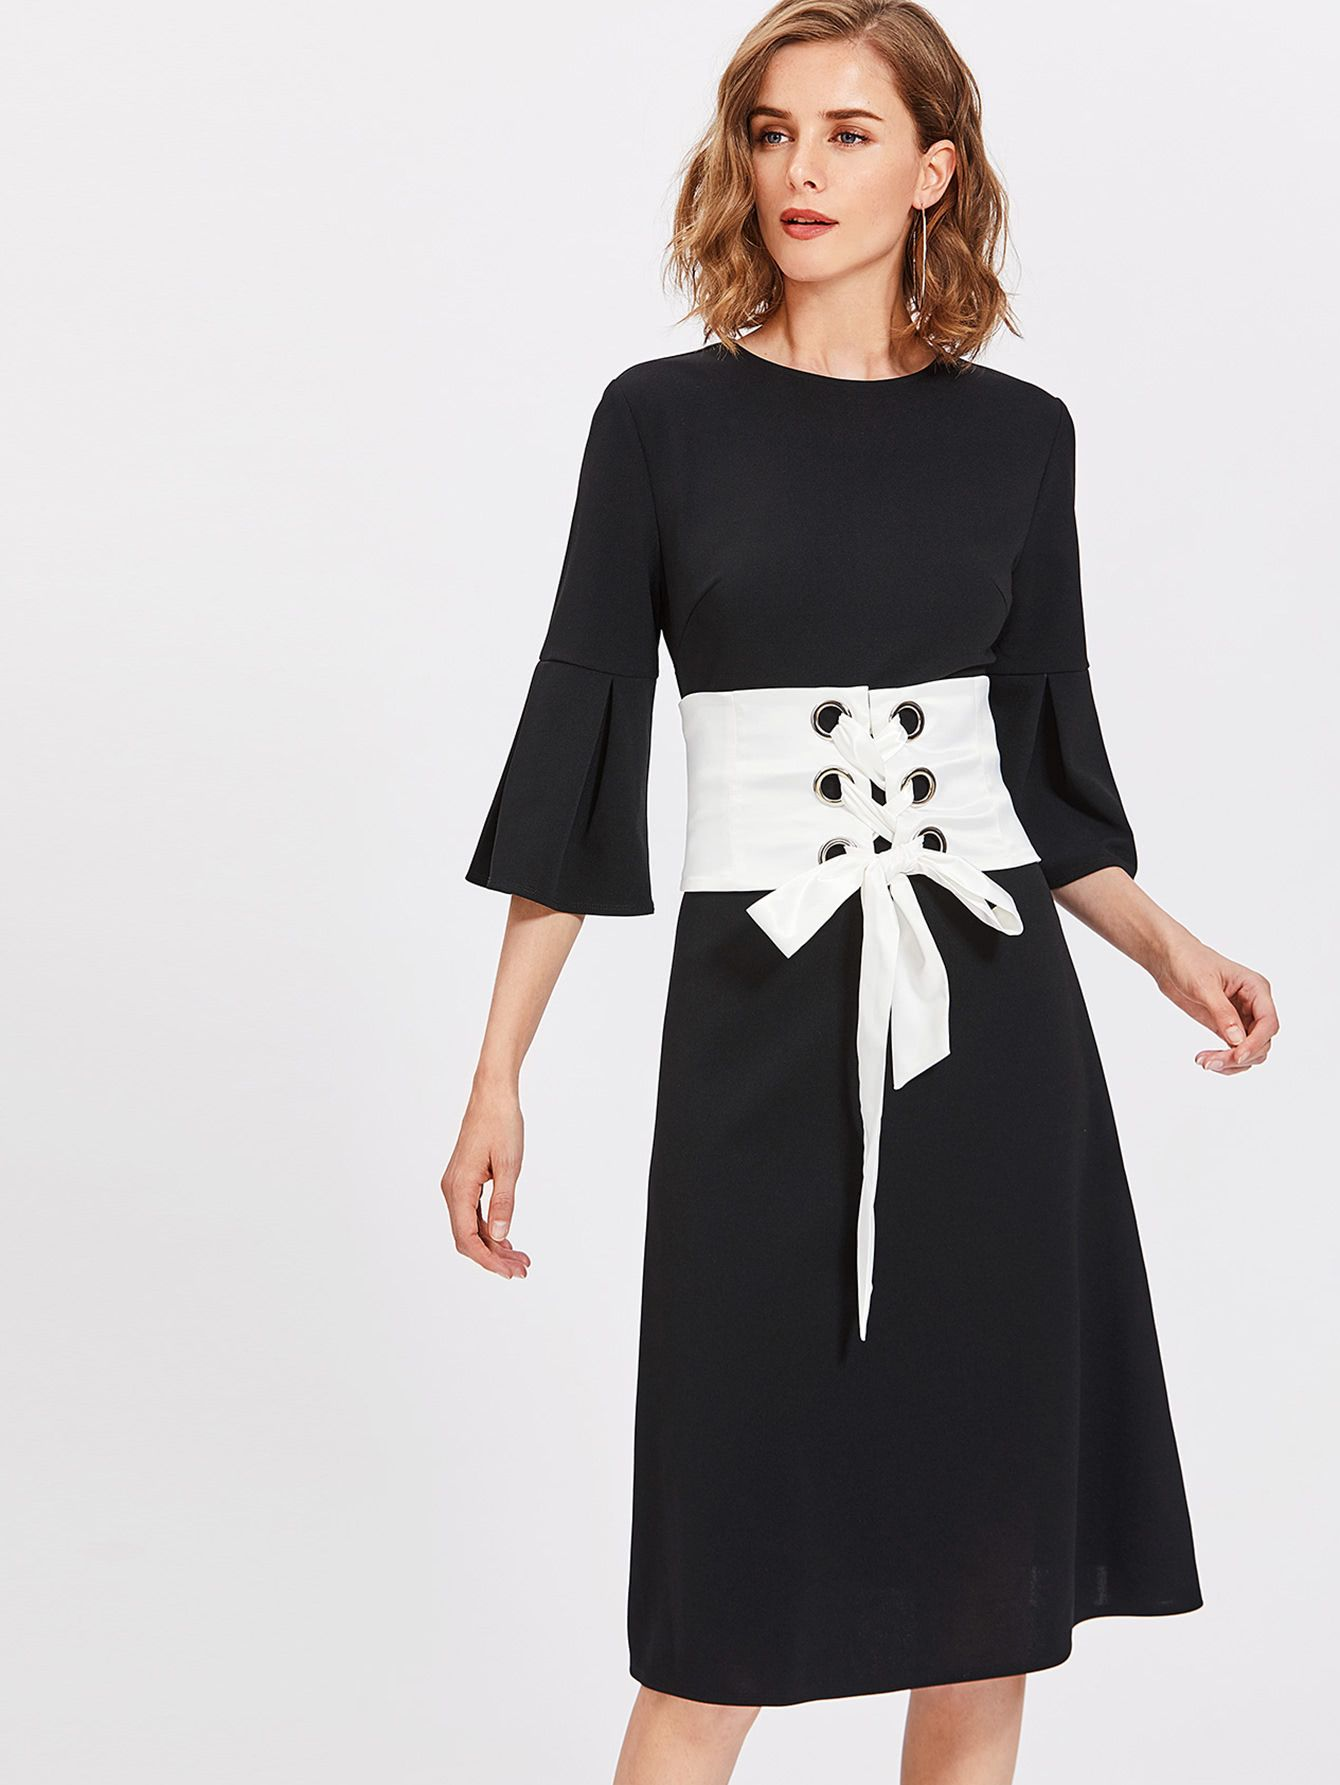 Buy it now pleated fluted sleeve dress with corset belt black